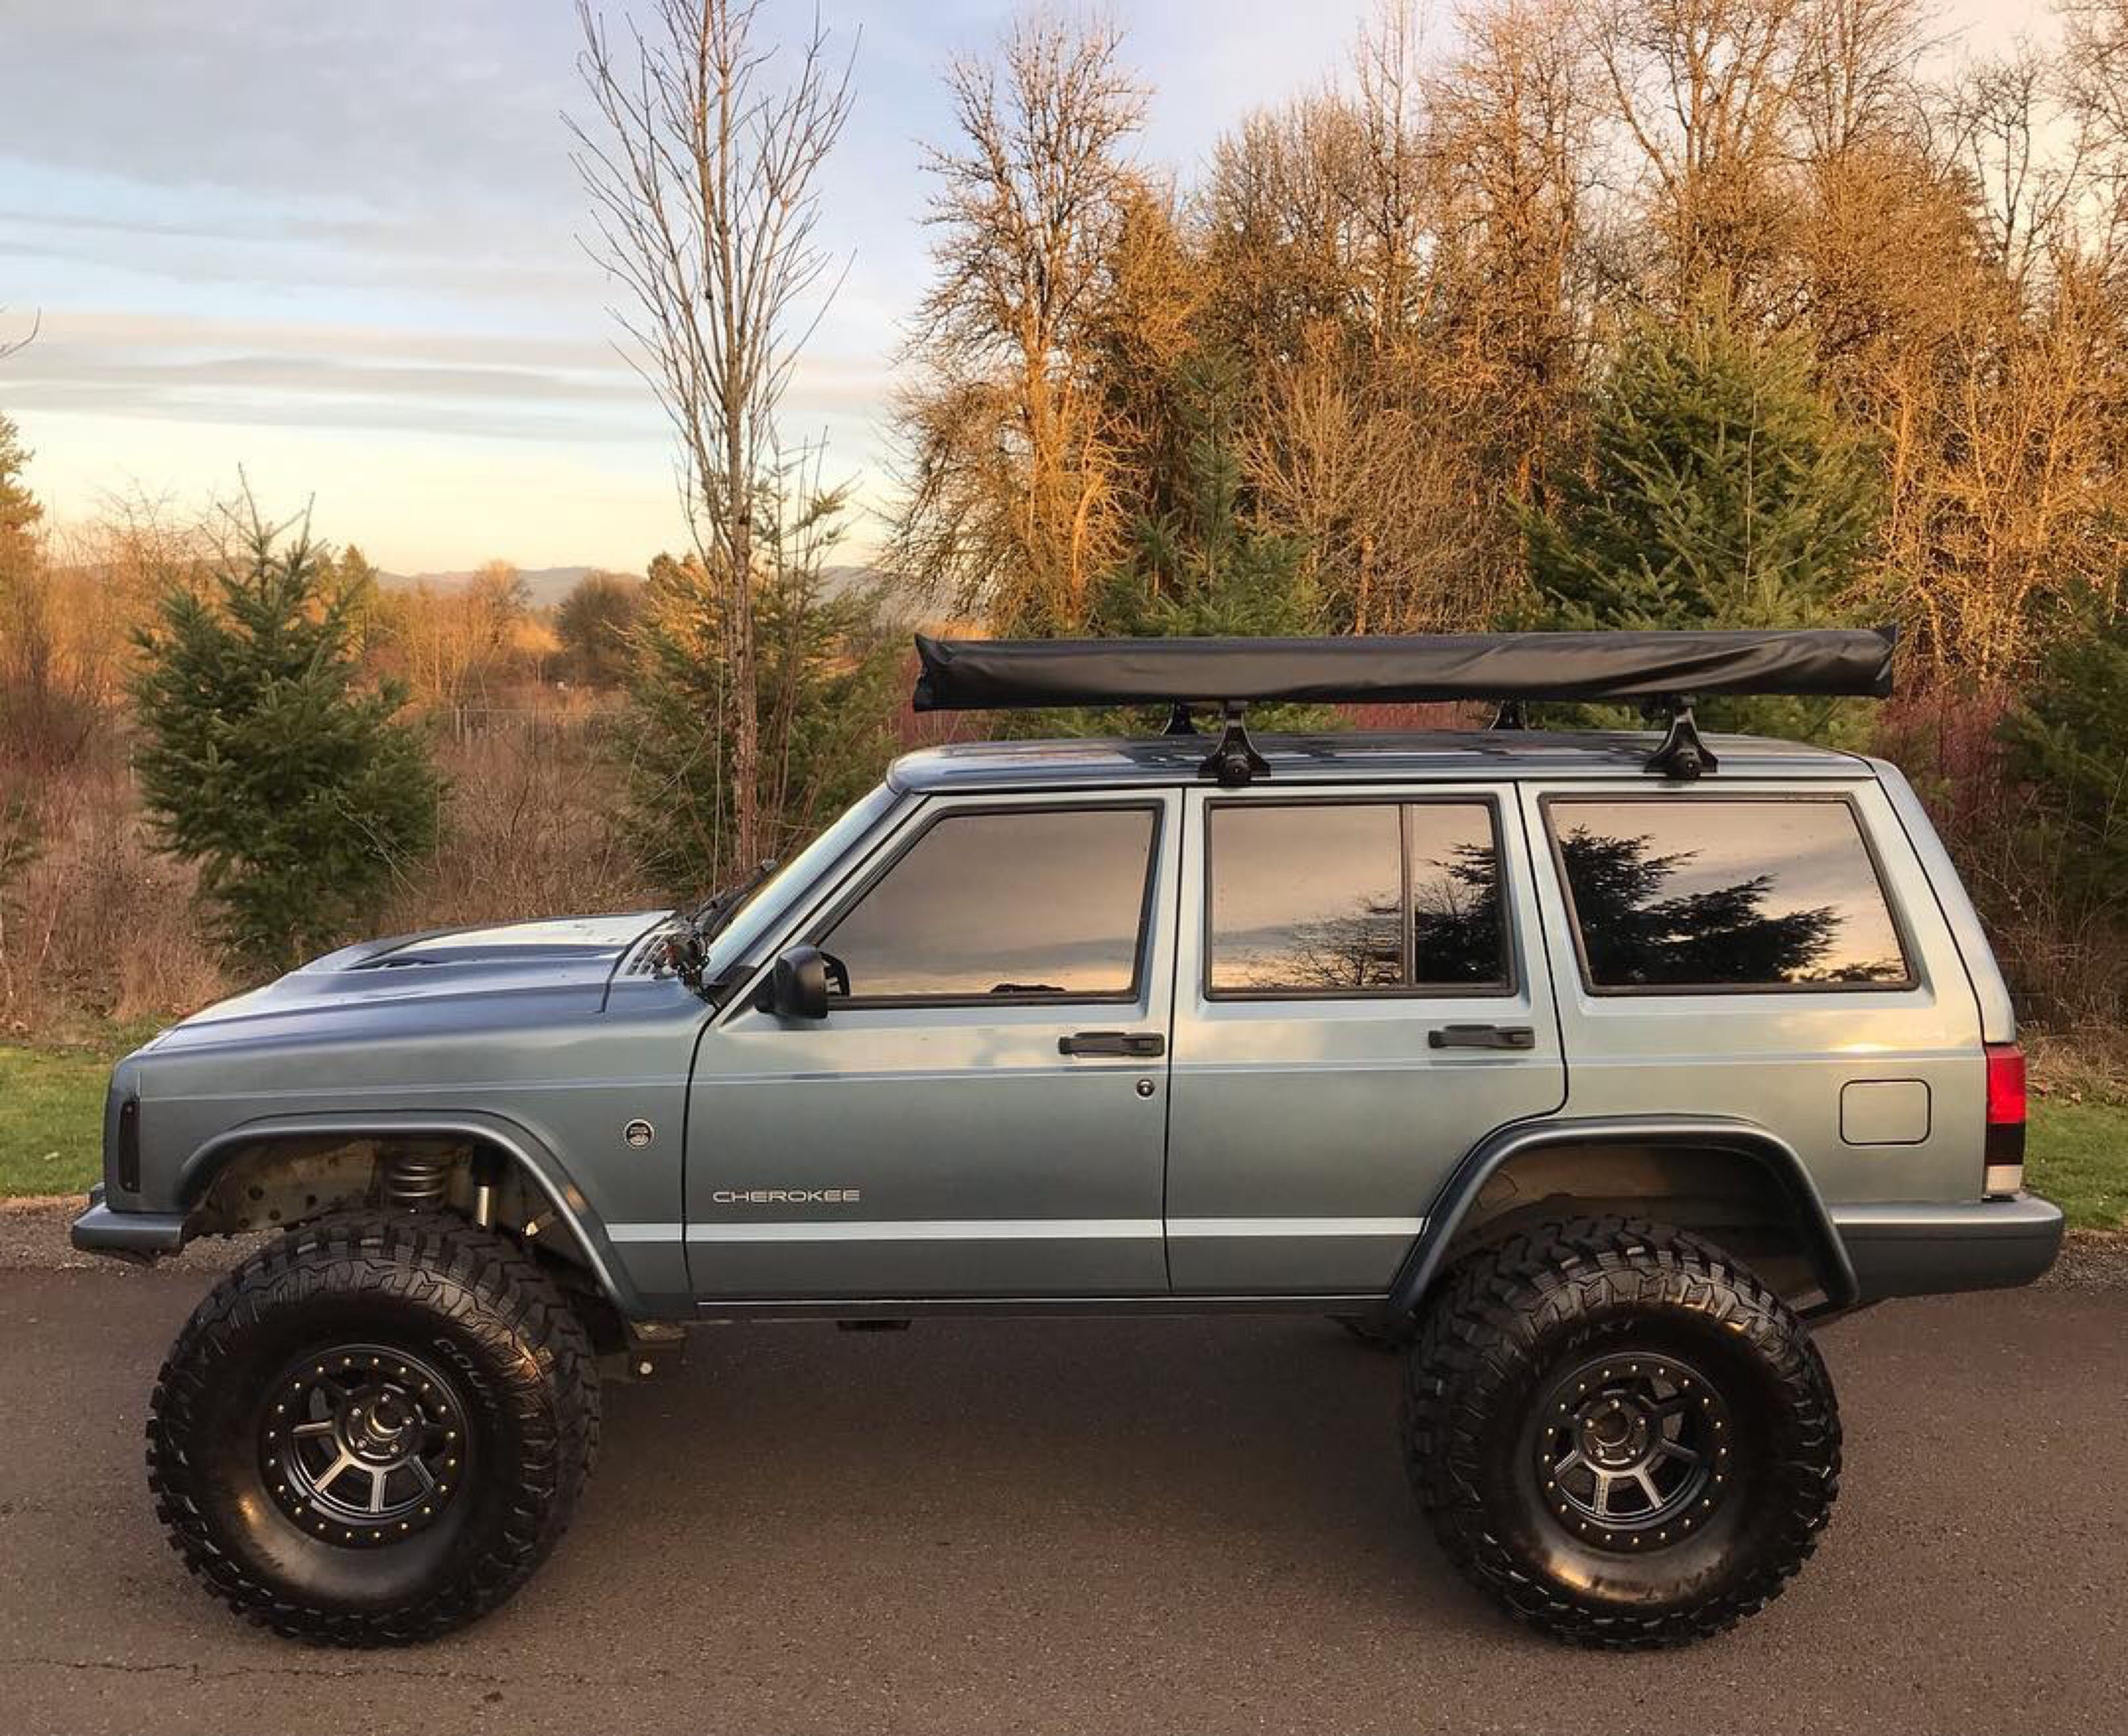 Jeep Cherokee Xj With Flat Style Fender Flares Jeep Cherokee Xj